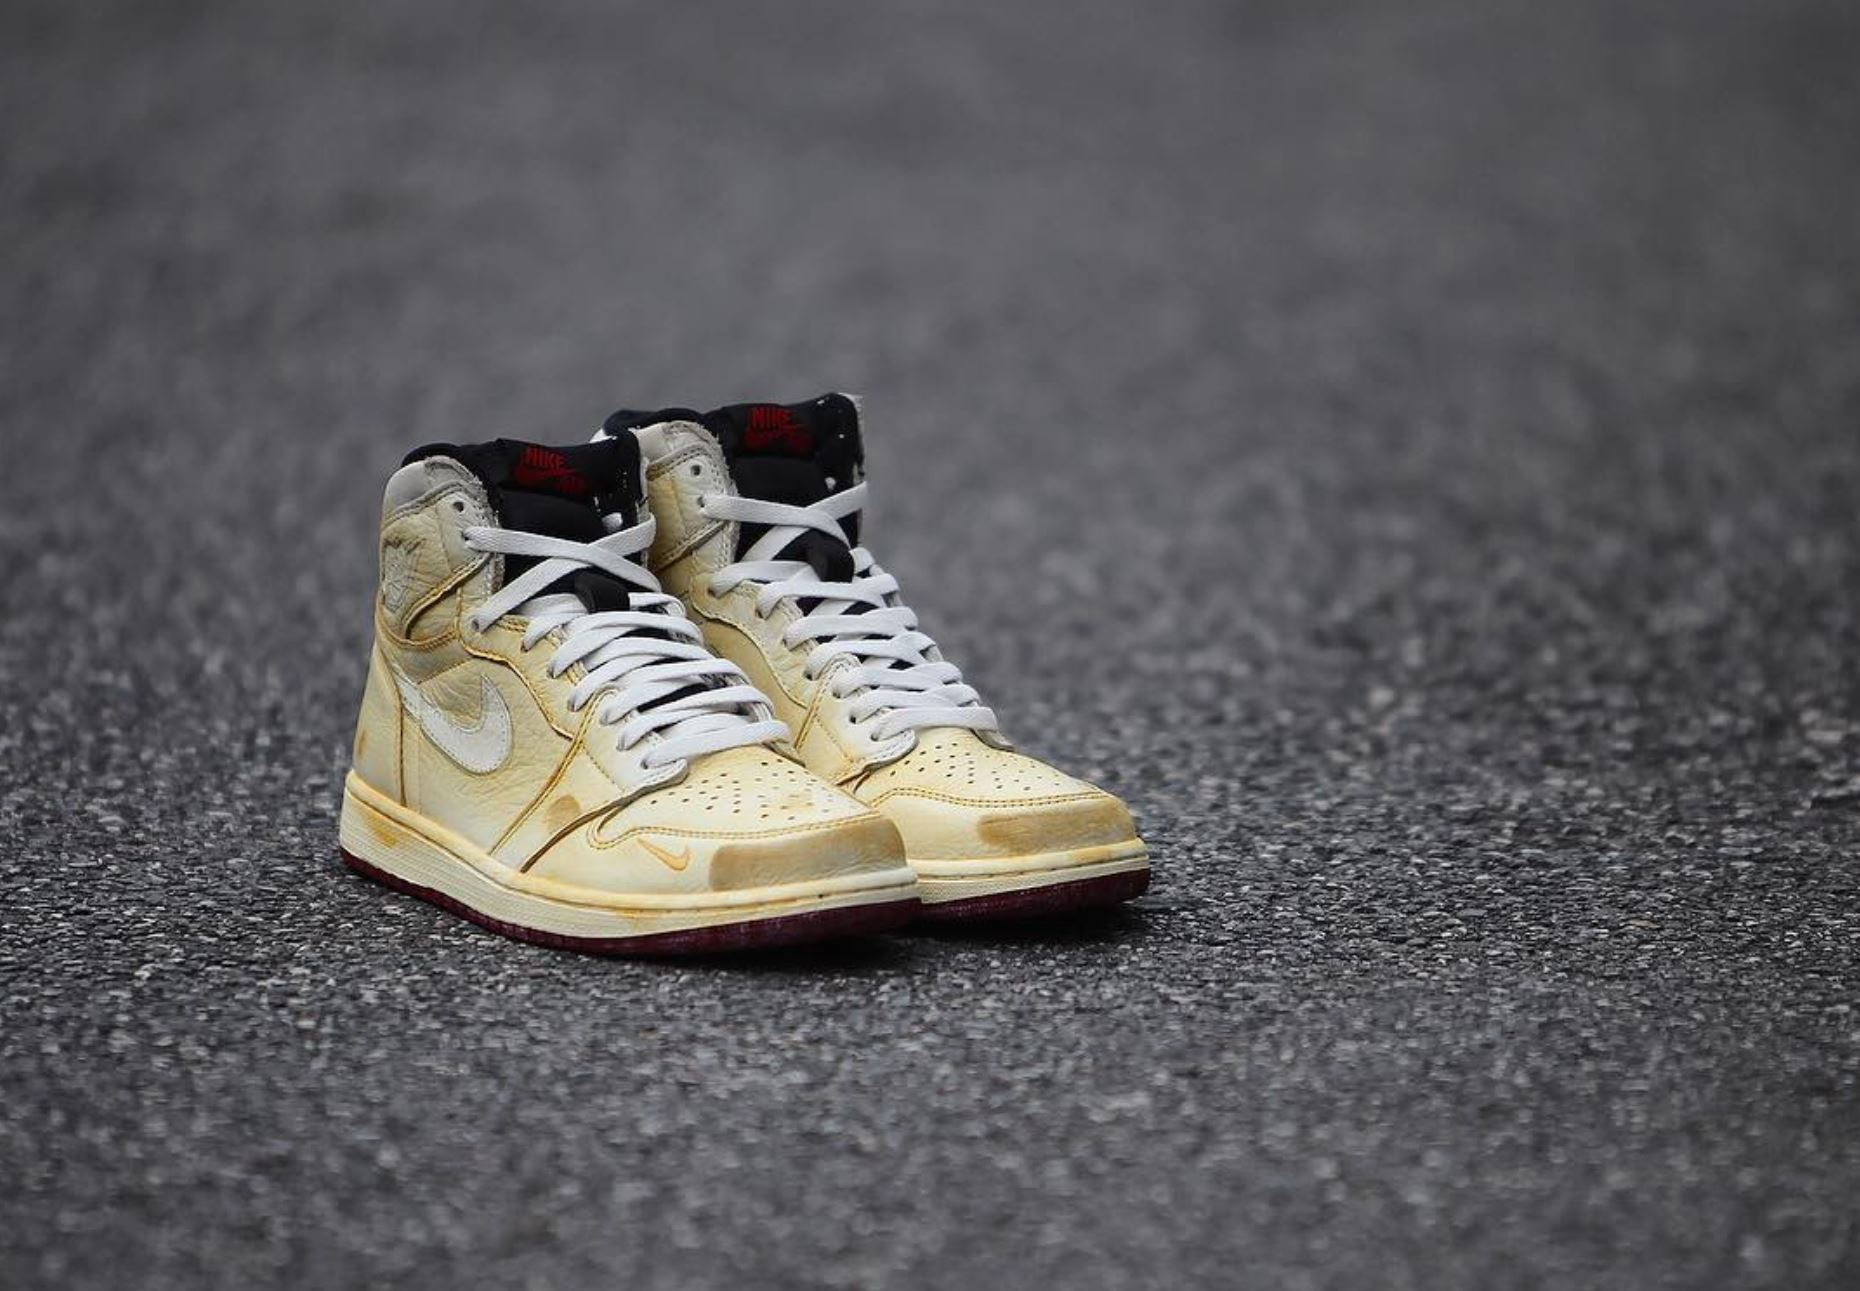 low priced b713e eb11d air jordan 1 nigel sylvester detailed look - WearTesters